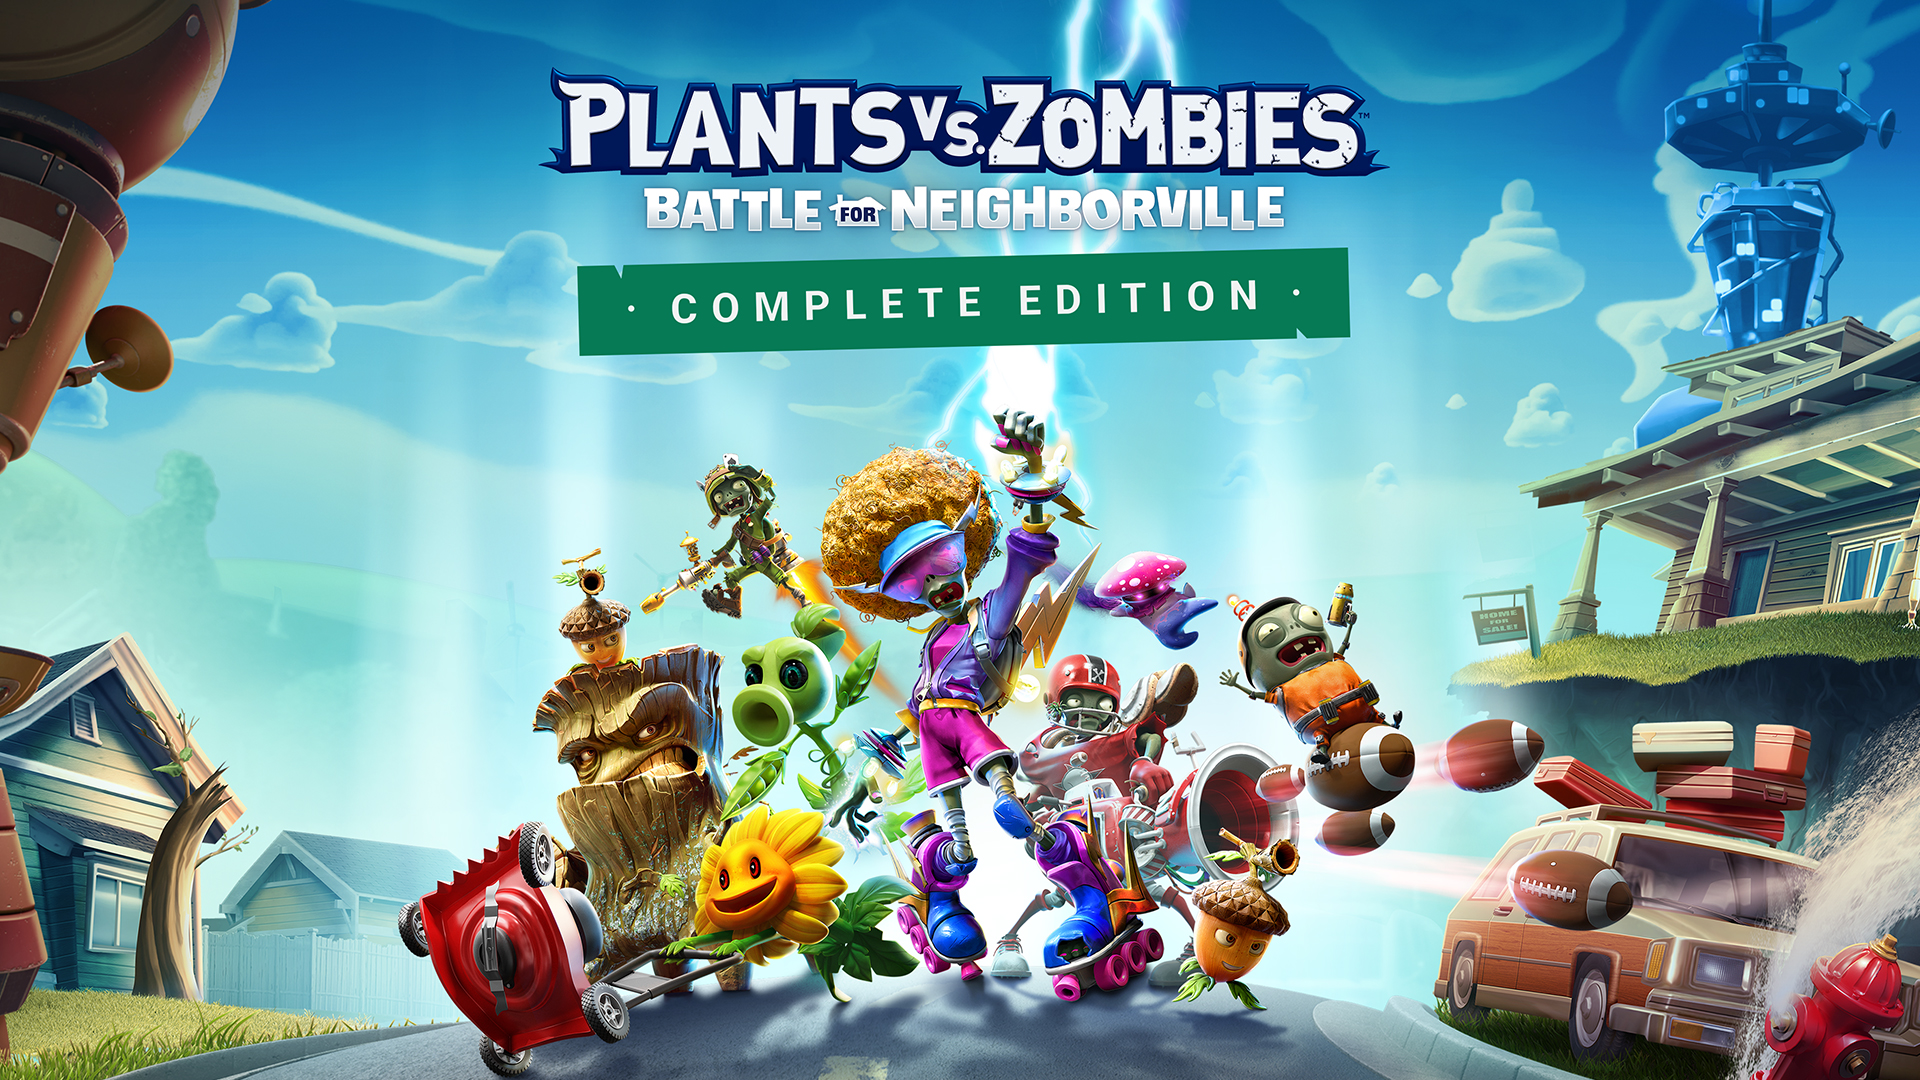 Plants vs Zombies: Battle for Neighborville finally comes to Switch